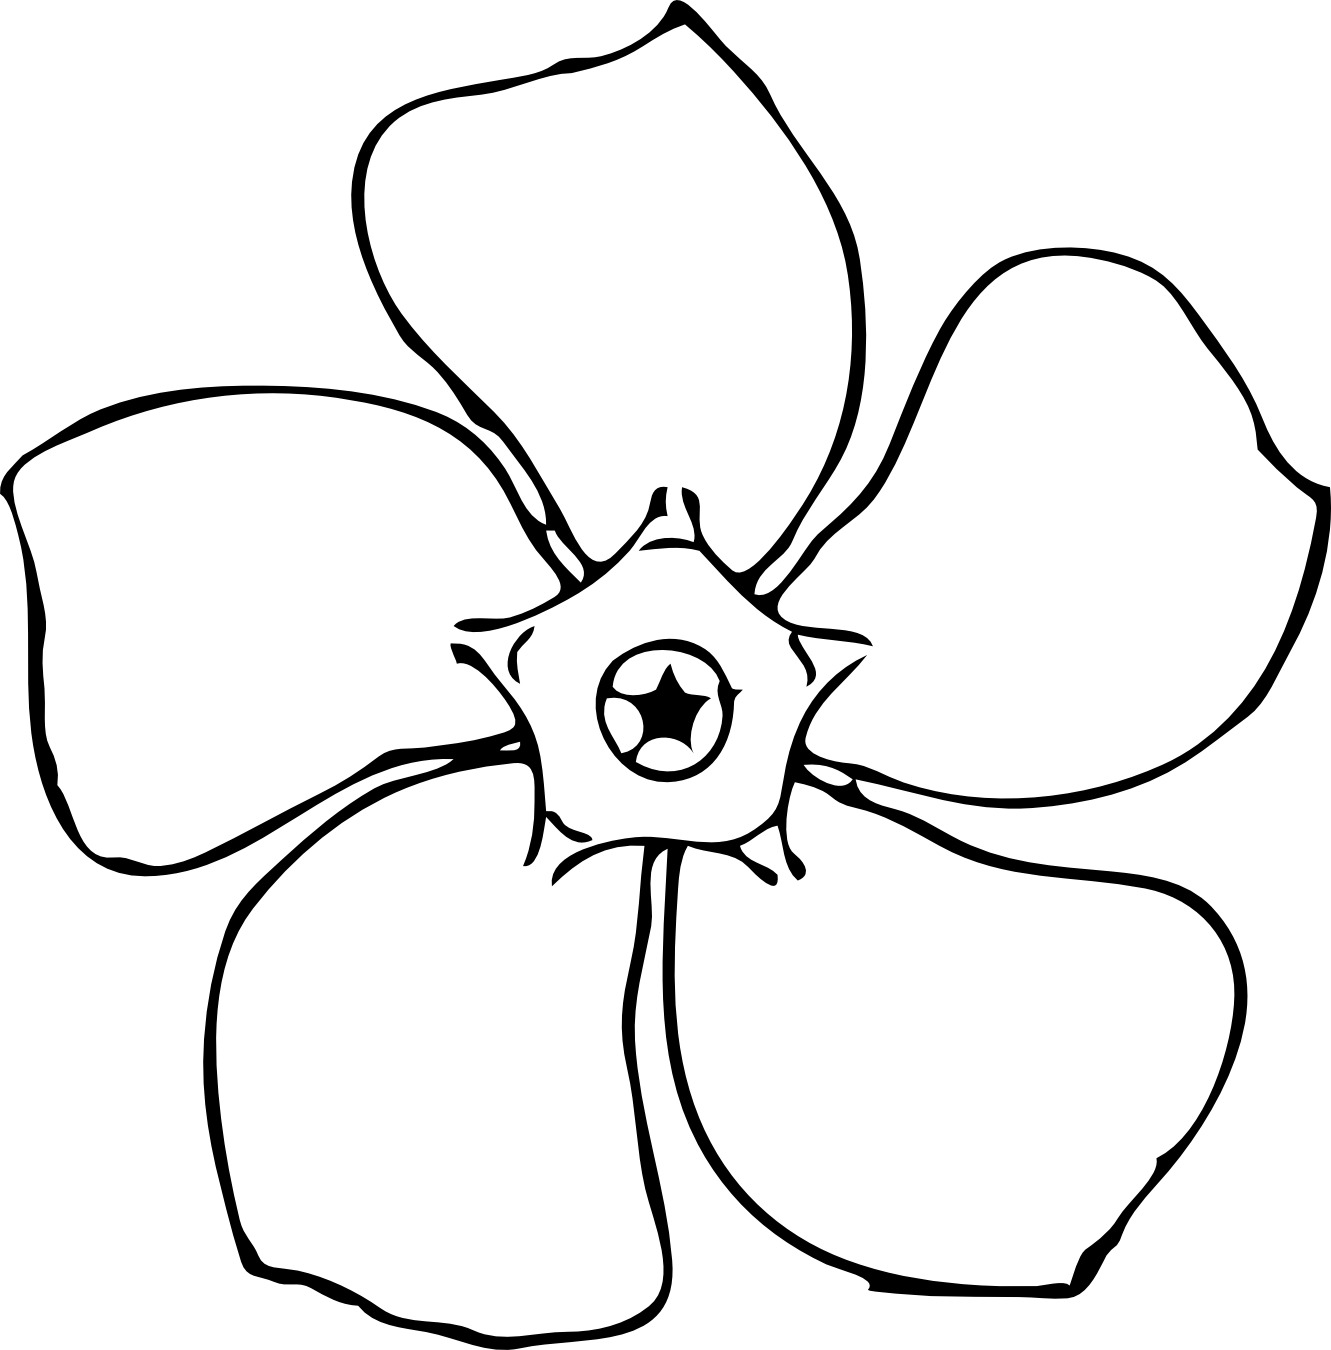 Camera clip art flower. Line drawing at getdrawings